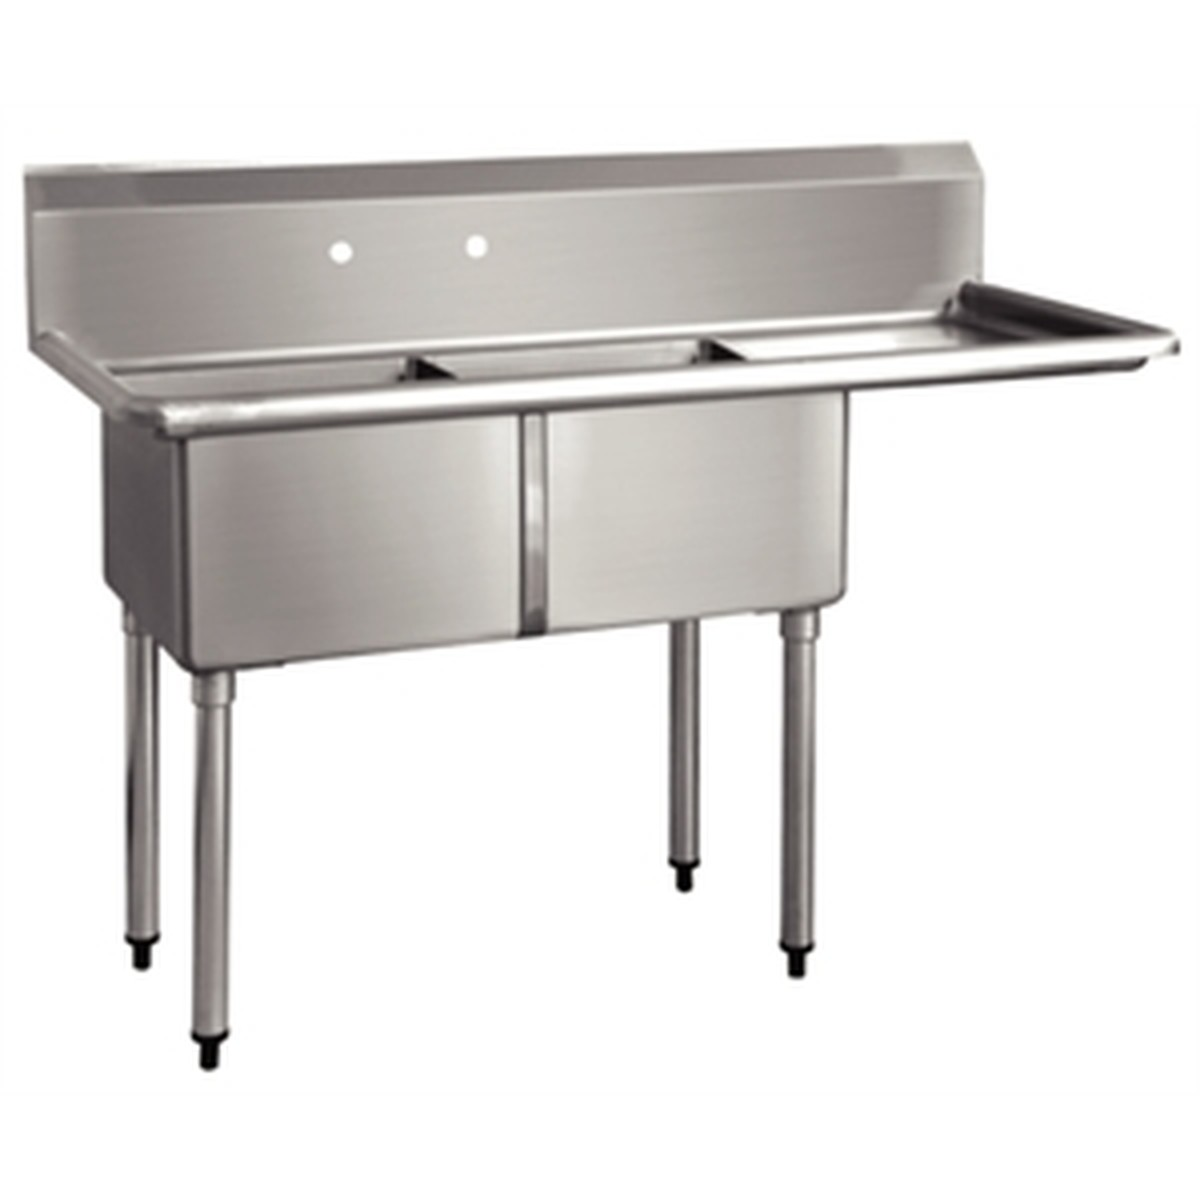 ... Sinks Brand New Stainless Steel Double Sink (3789) - Bridgwater